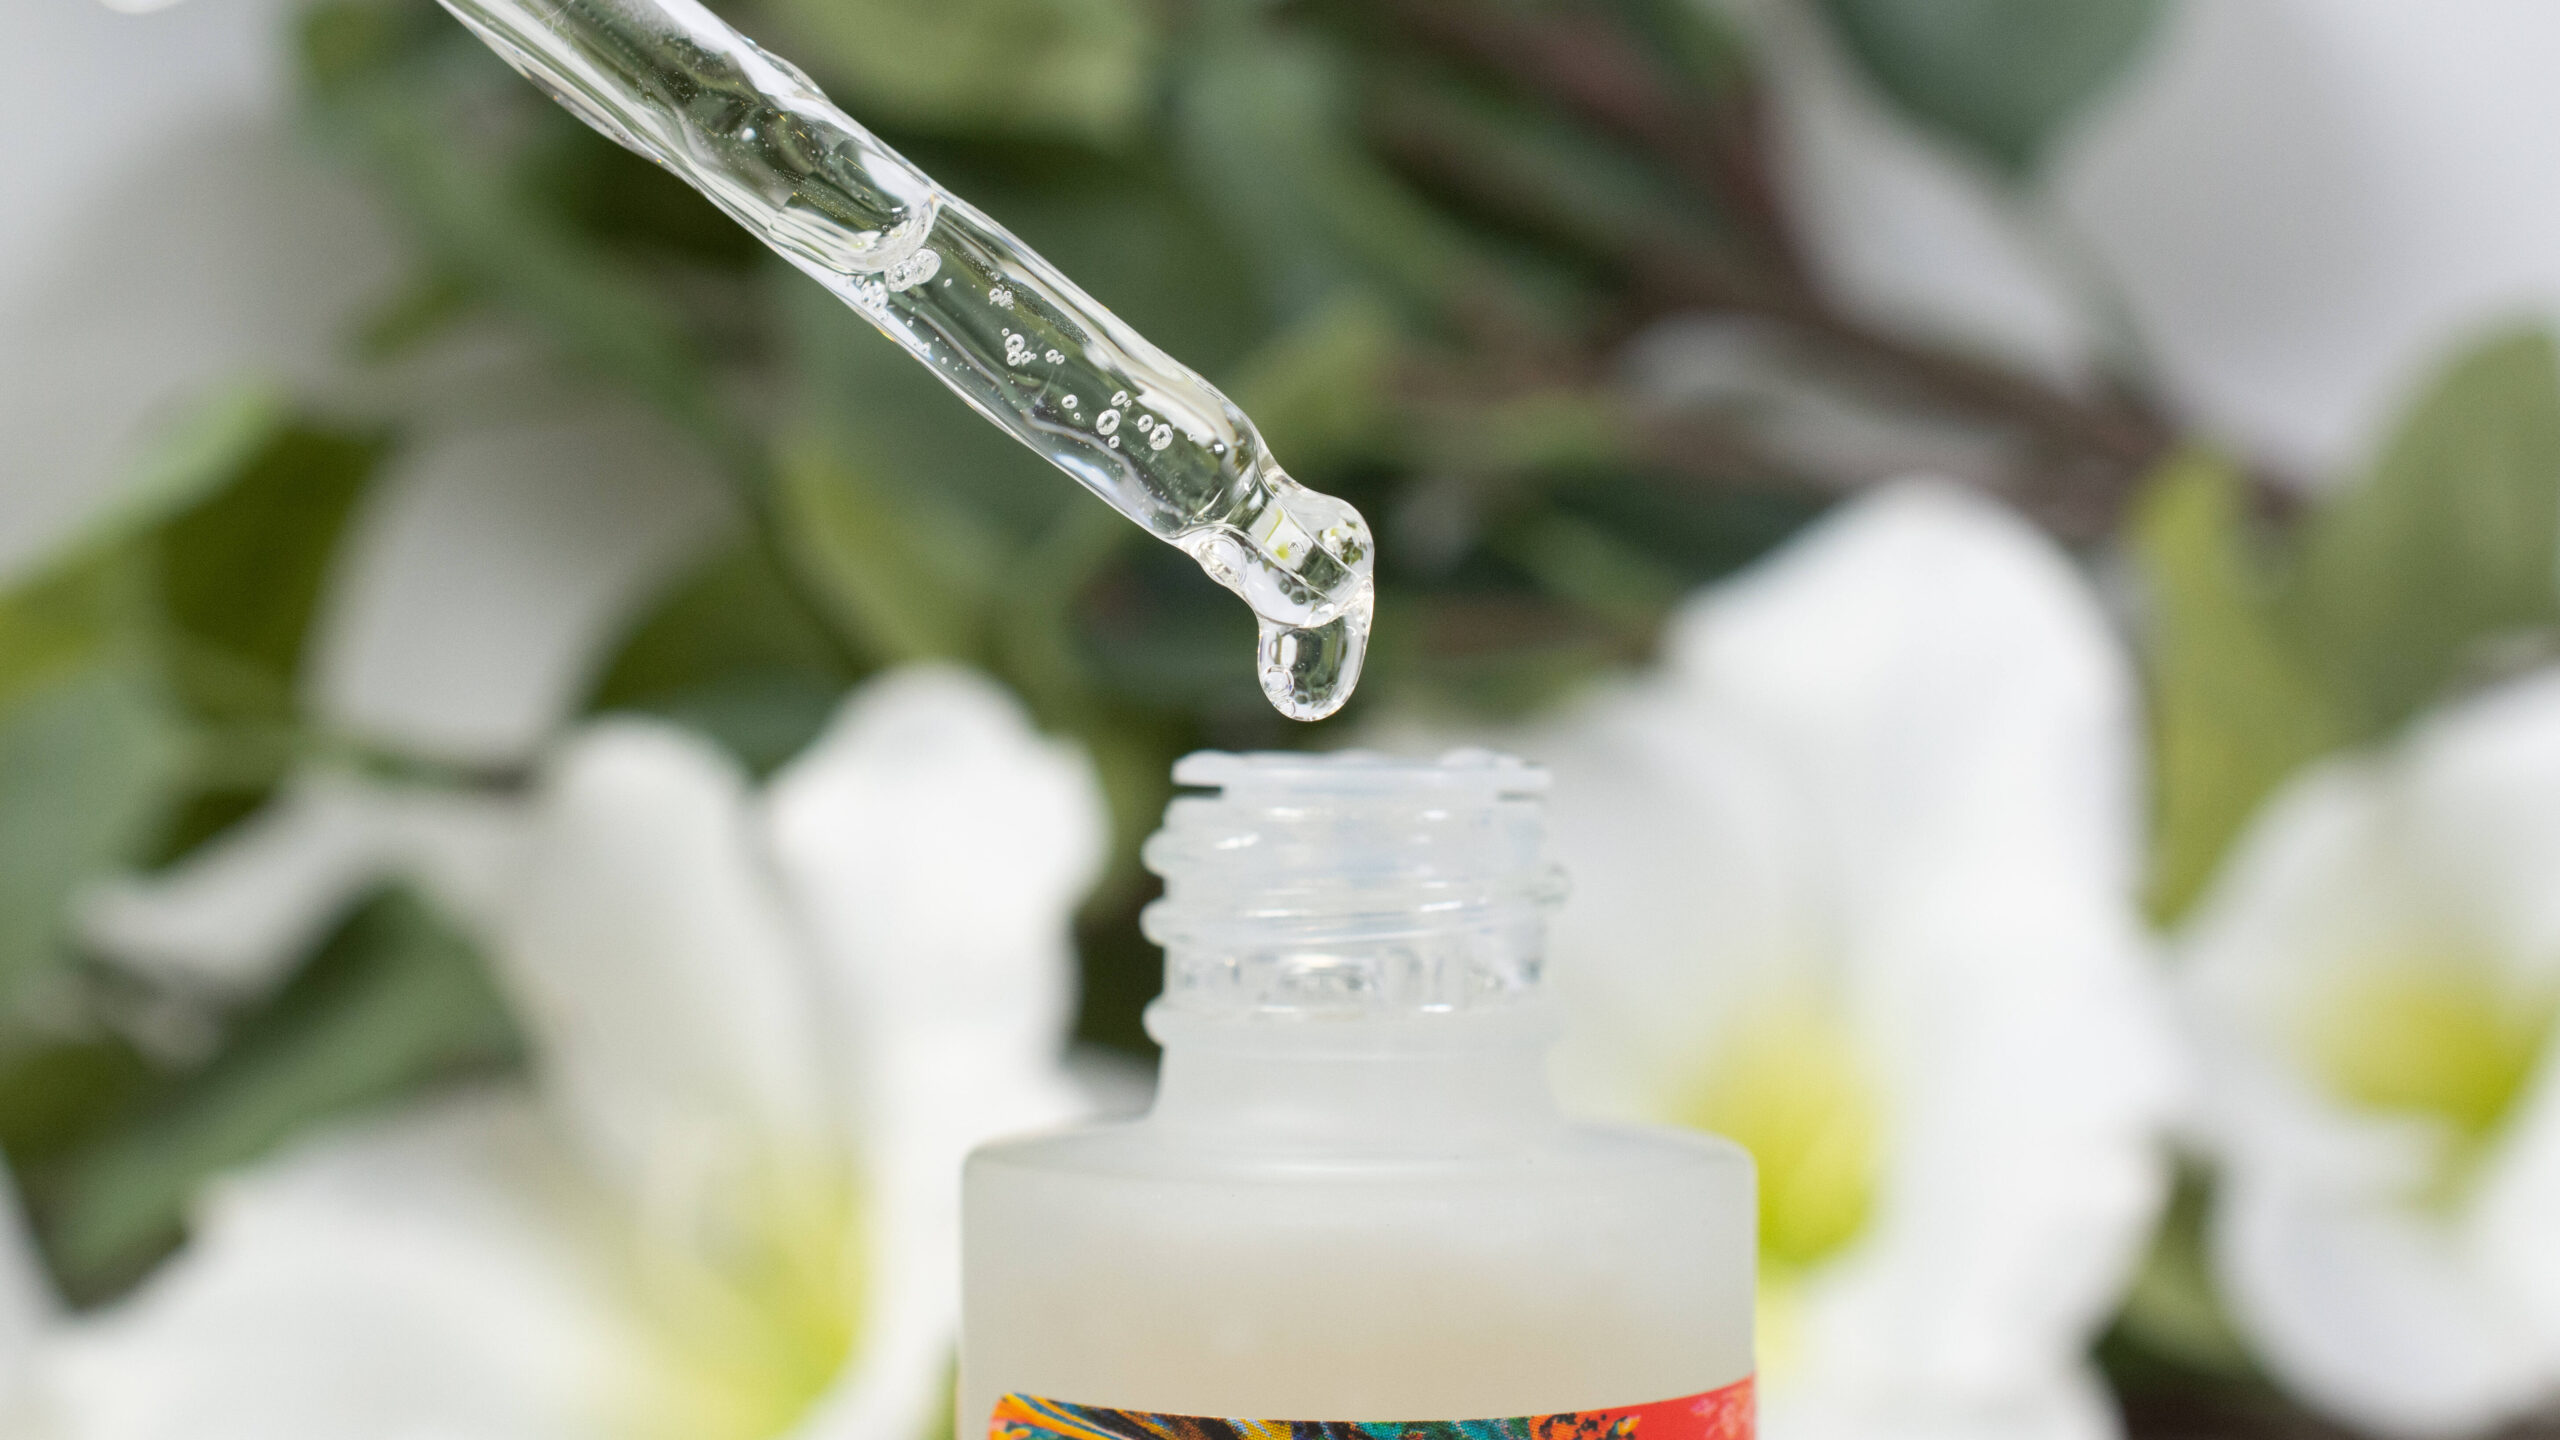 Close up of the Good Molecules Discoloration Correcting Serum